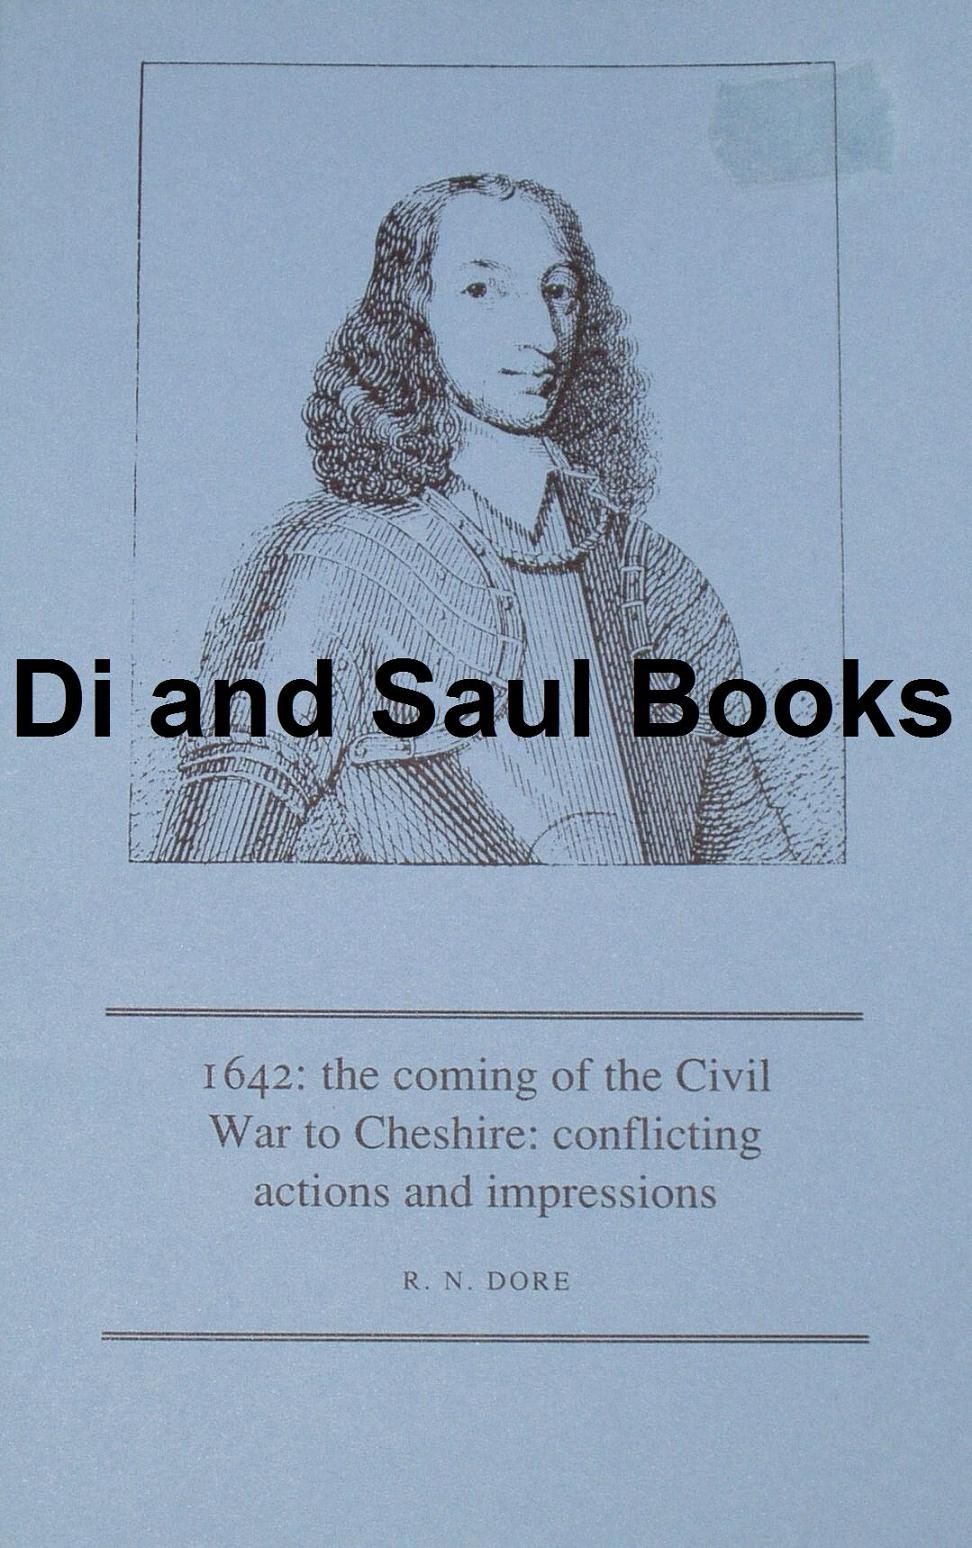 1642 - The Coming of the Civil War to Cheshire, by R Dore